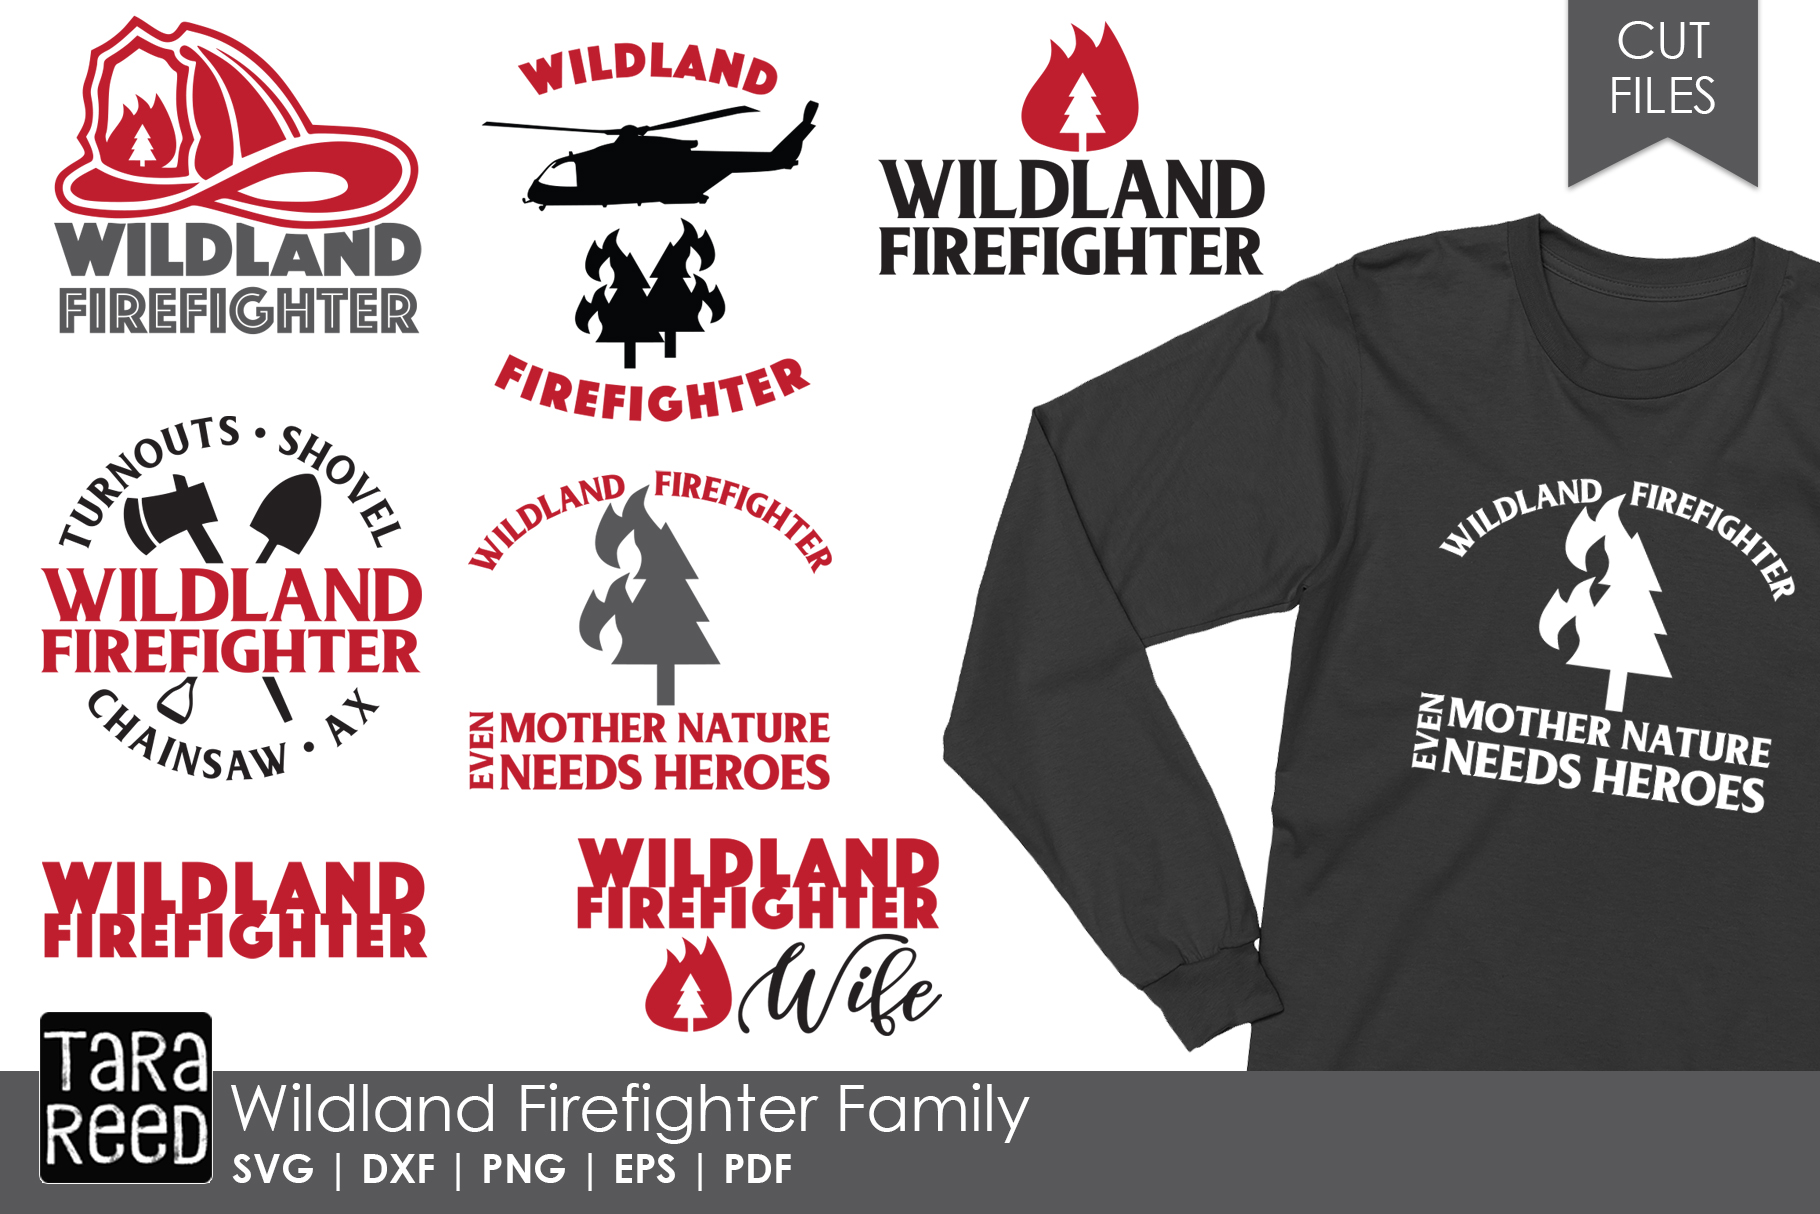 Wildland Firefighter - Firefighter SVG and Cut Files example image 1